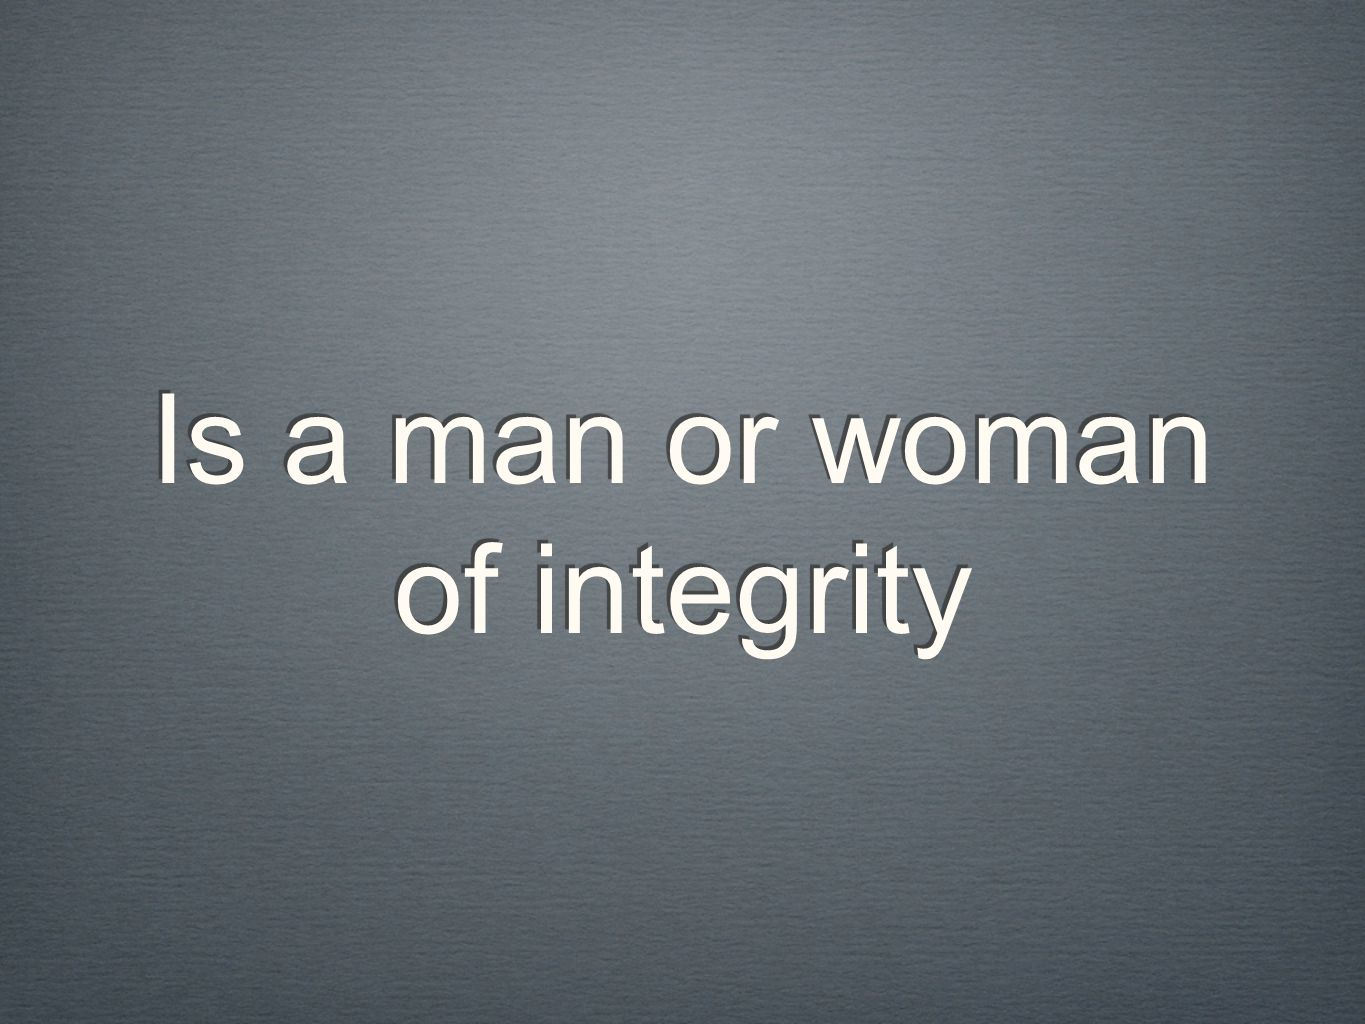 Is a man or woman of integrity